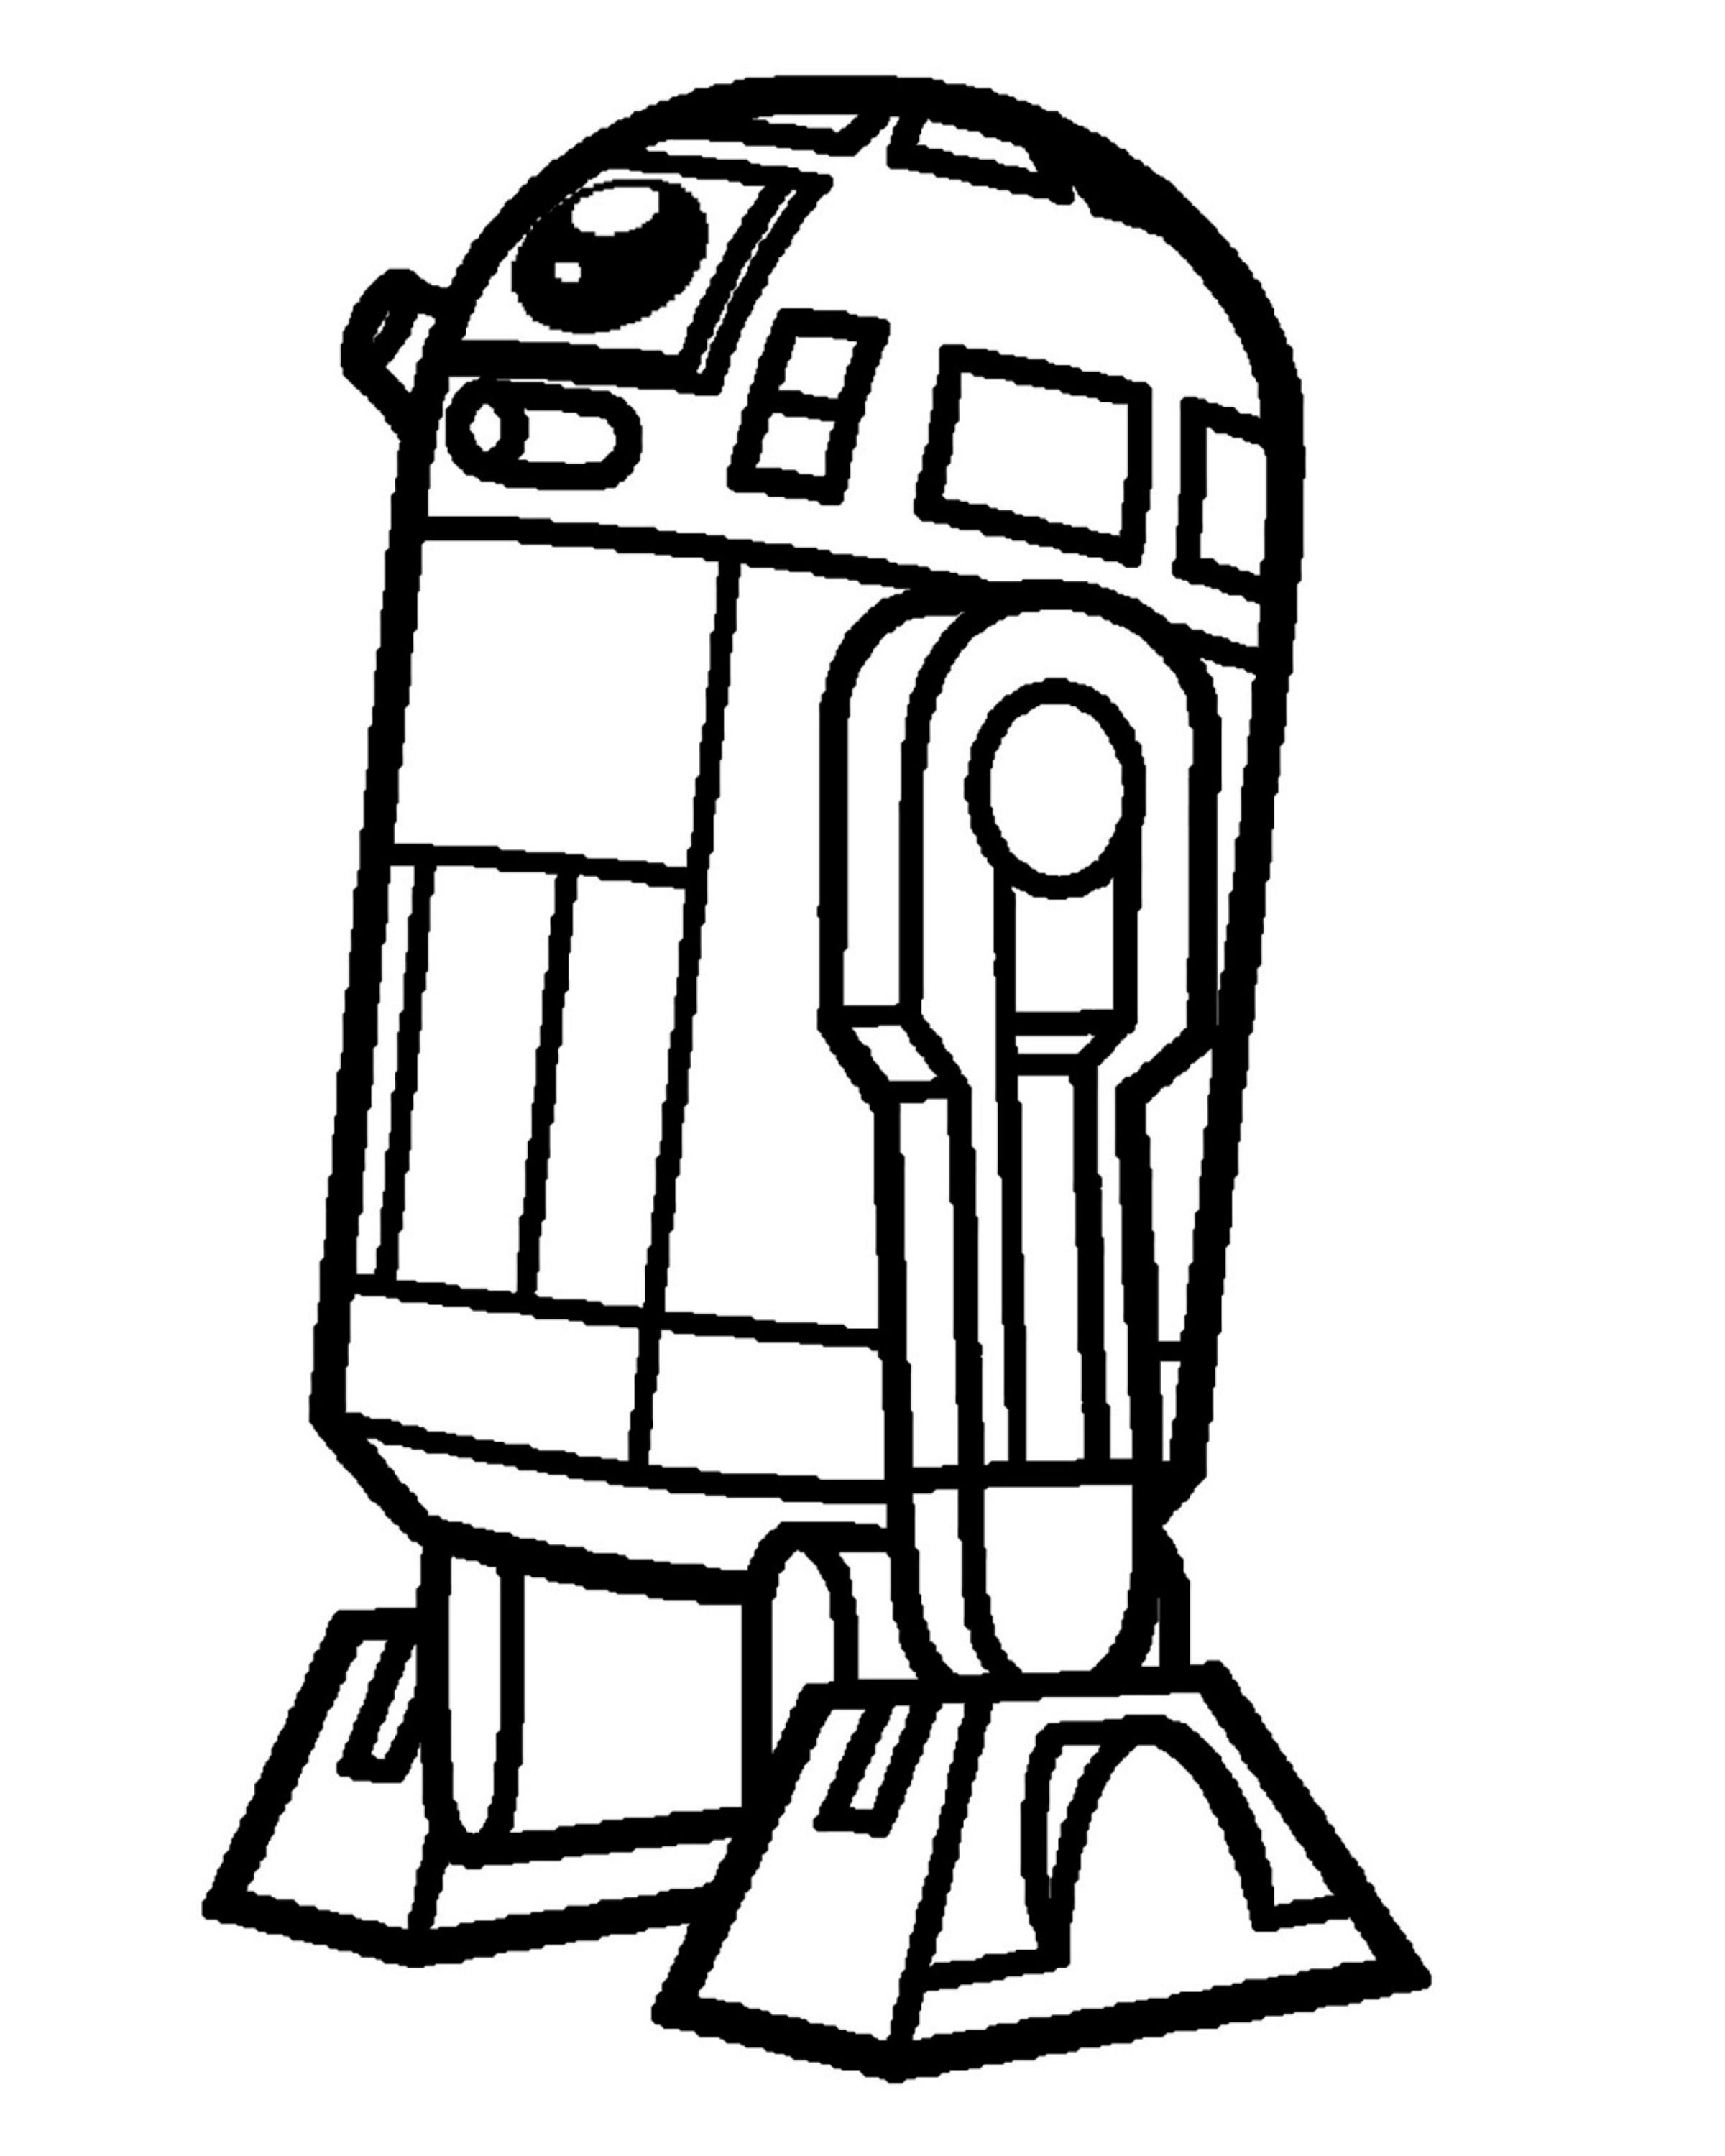 Star Wars Character Outlines : character, outlines, R2d2-outline.jpg, 2,400×3,000, Pixels, Characters, Drawings,